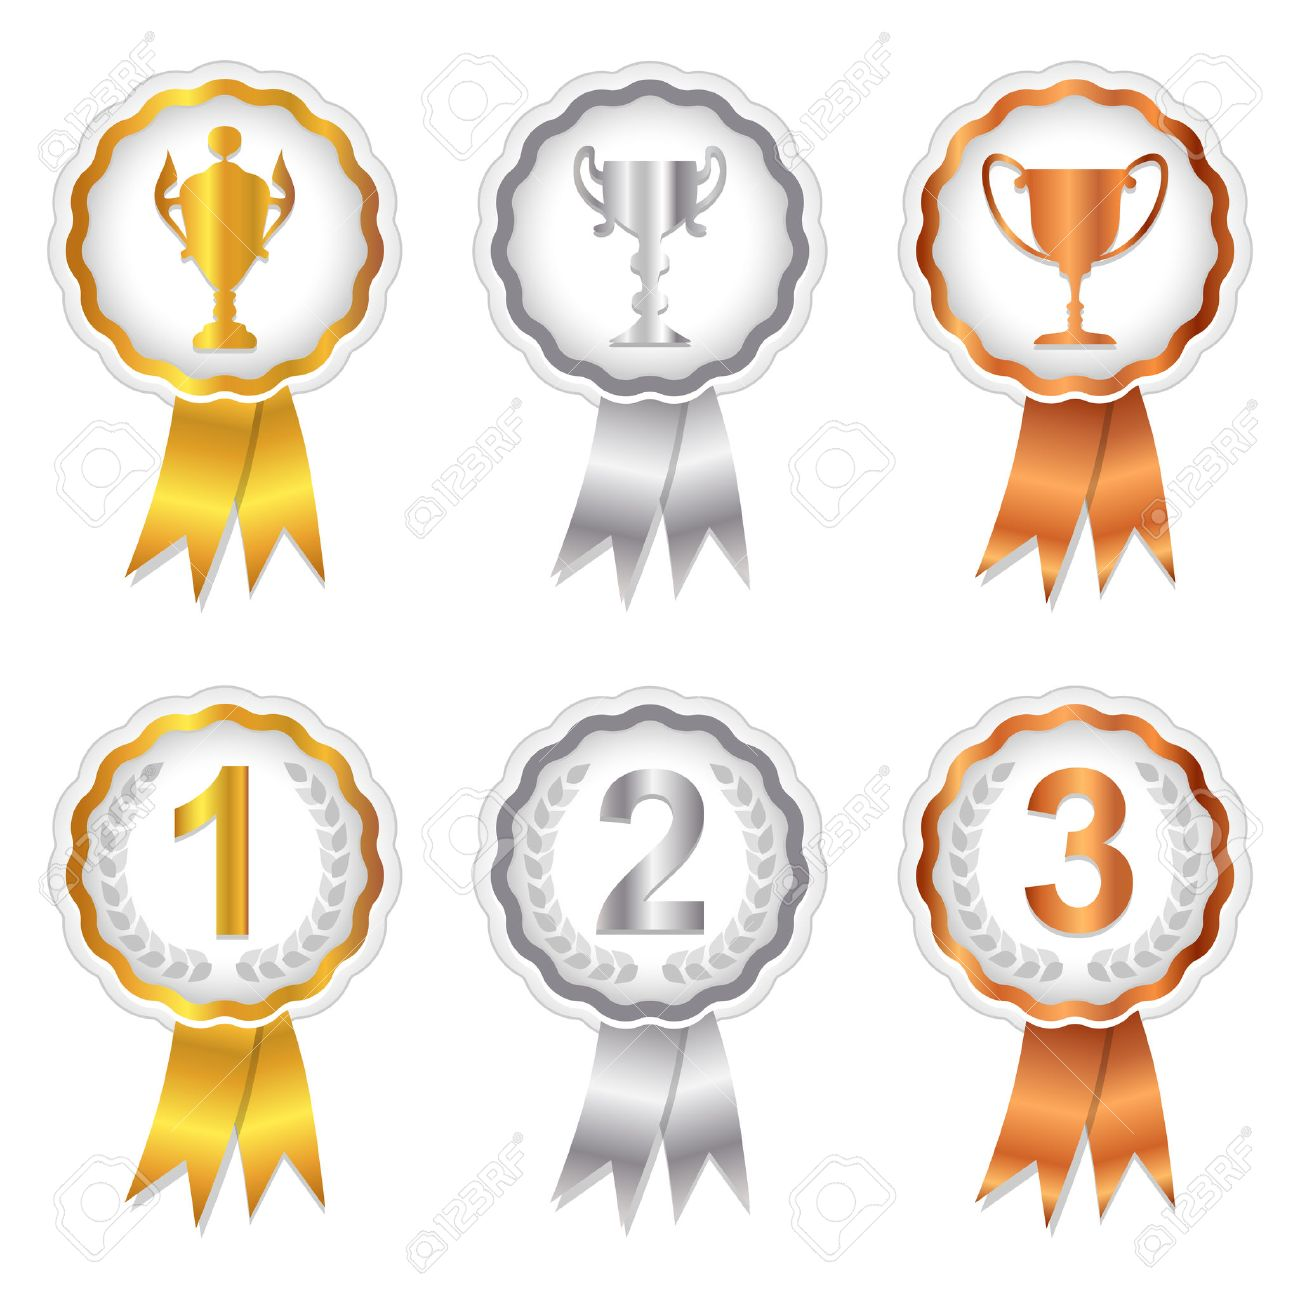 Gold, Silver and Bronze rosette badges with trophy and place numbers for 1st, 2nd and 3rd Stock Vector - 6488753